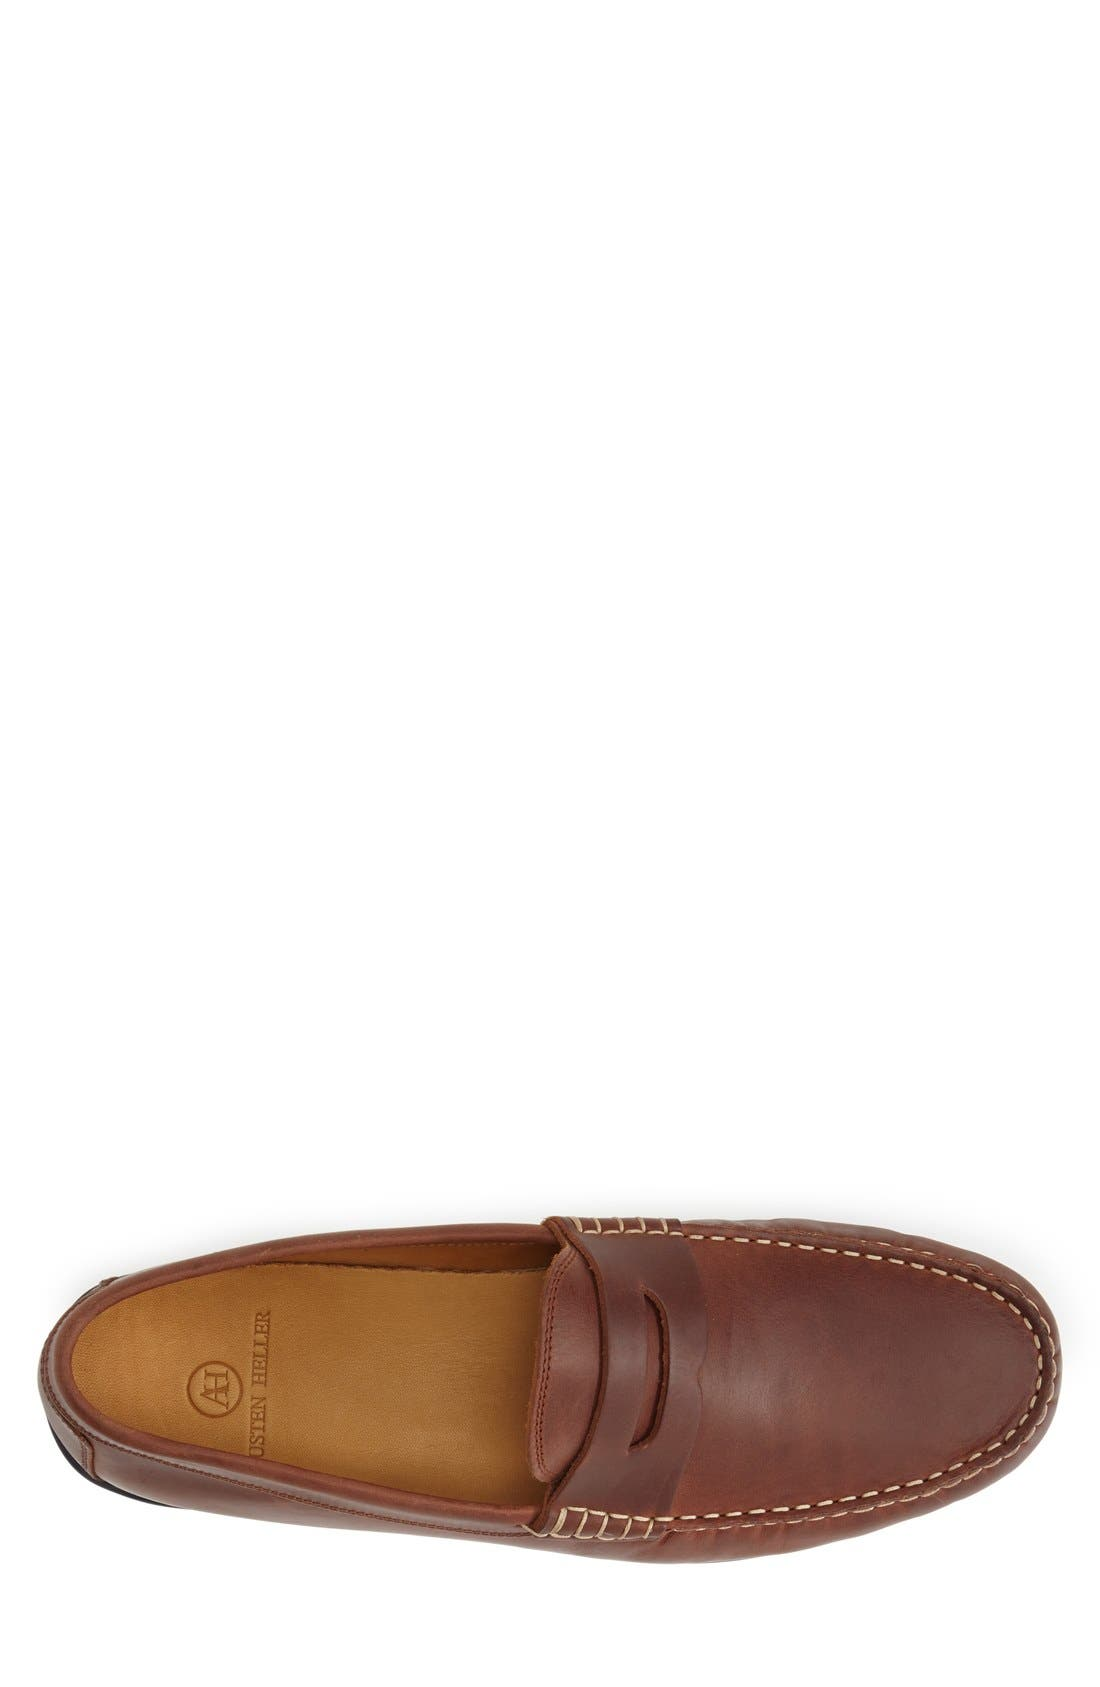 'Clinton' Leather Penny Loafer,                             Alternate thumbnail 9, color,                             LIGHT BROWN